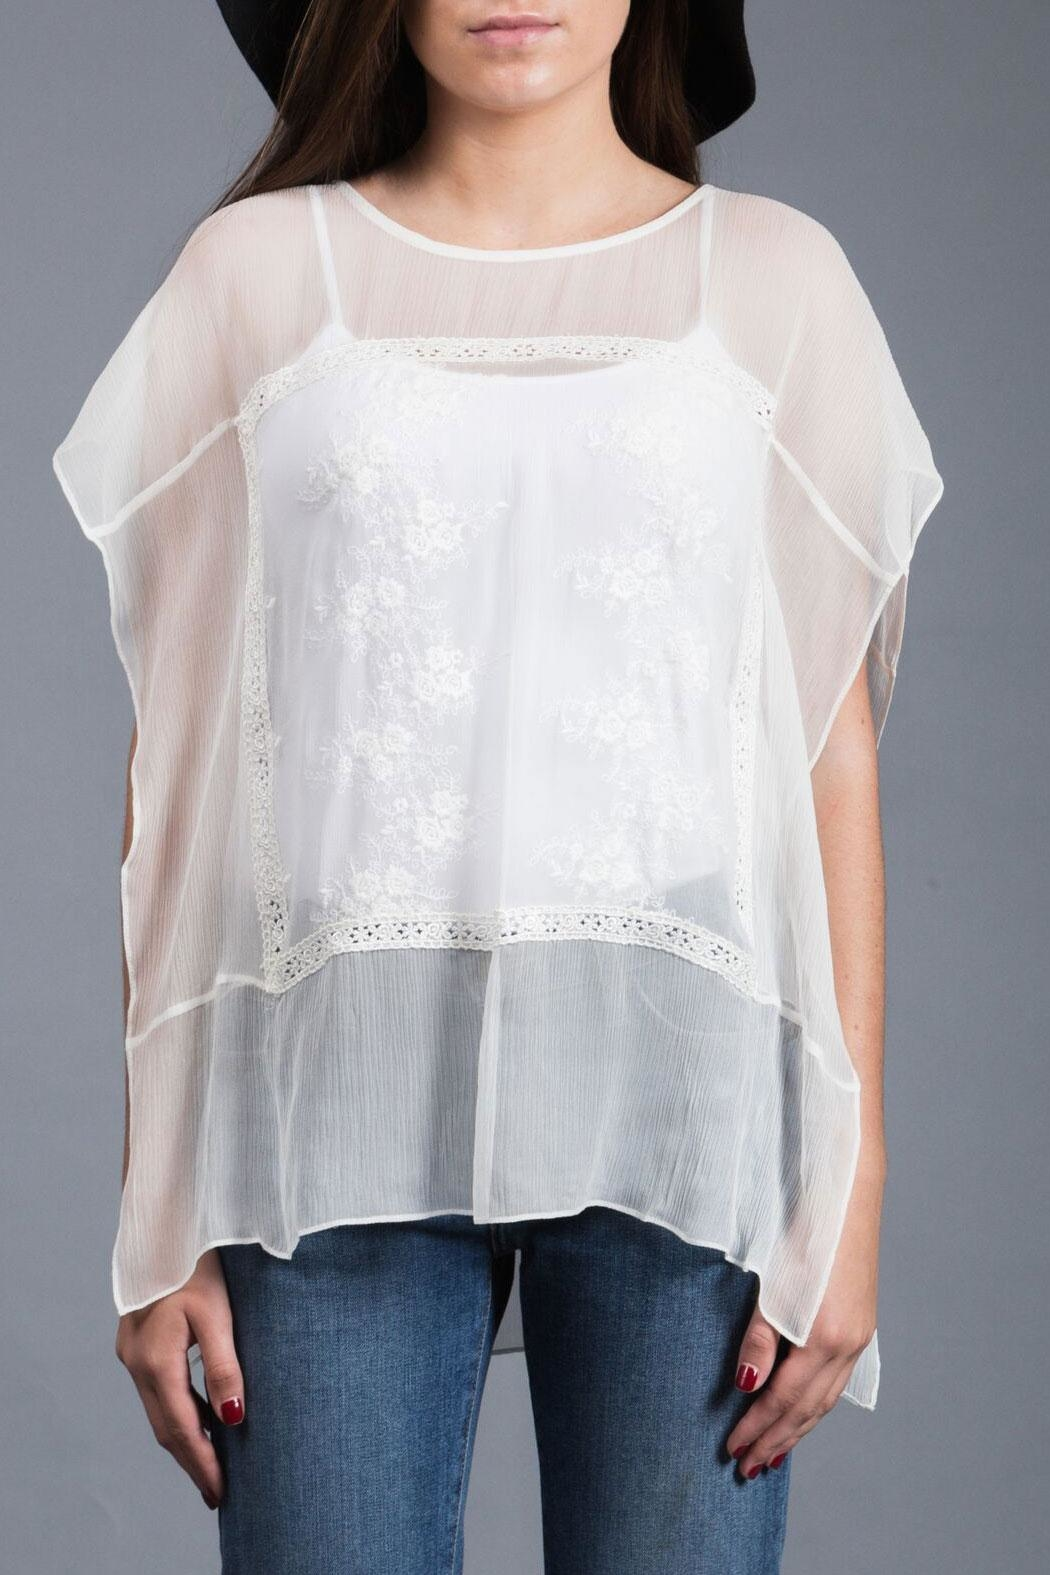 Zoa Embroidered Silk Top - Main Image